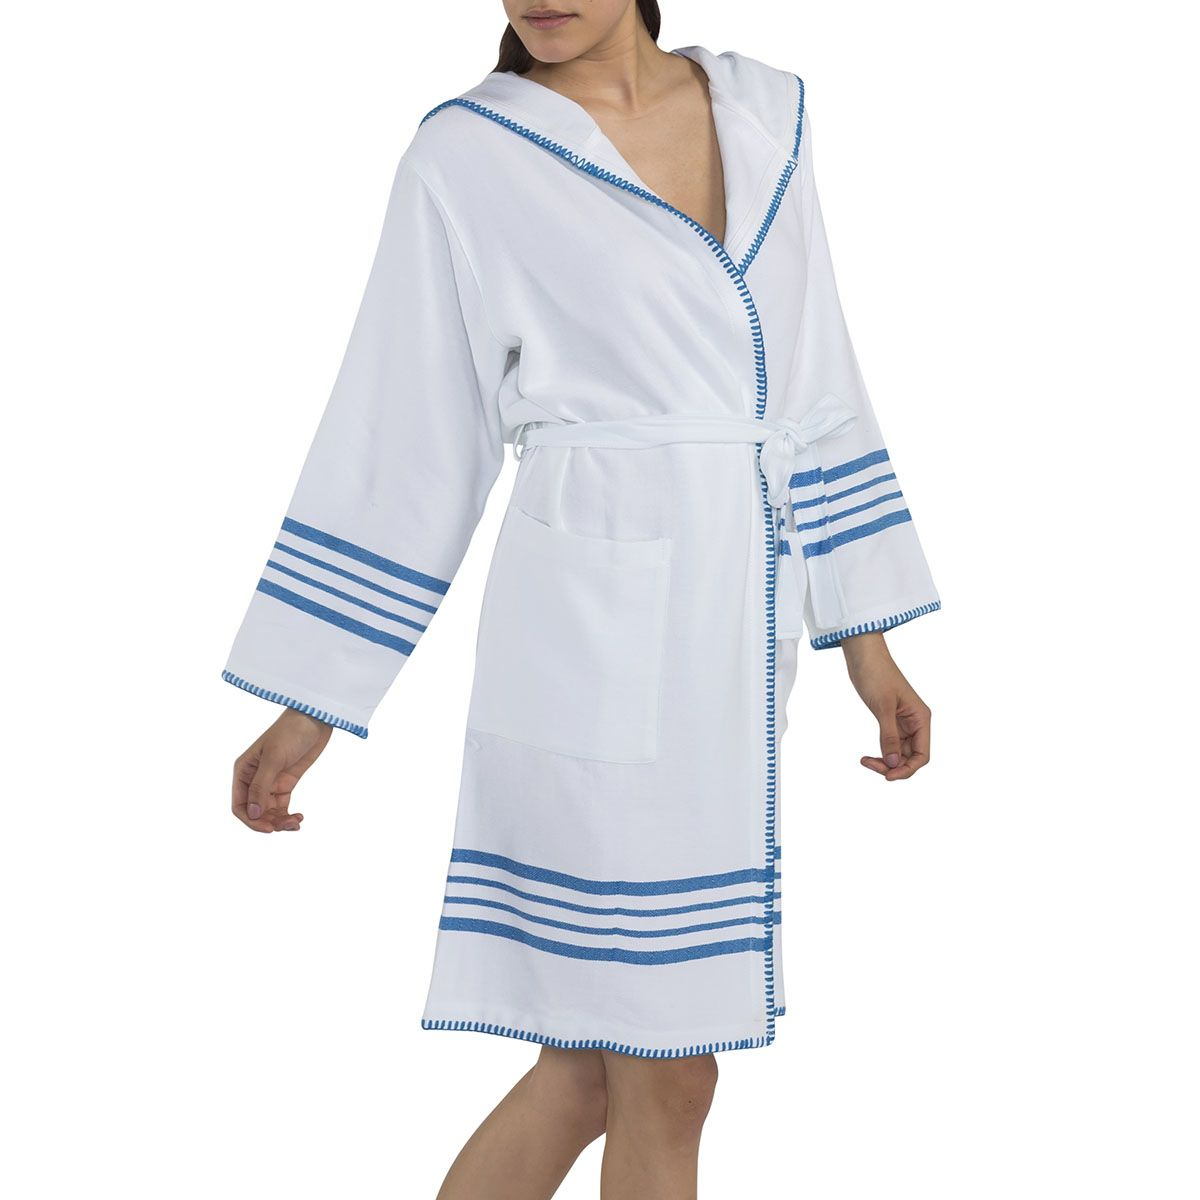 Bathrobe White Sultan with hood & stitches - White / Turquoise